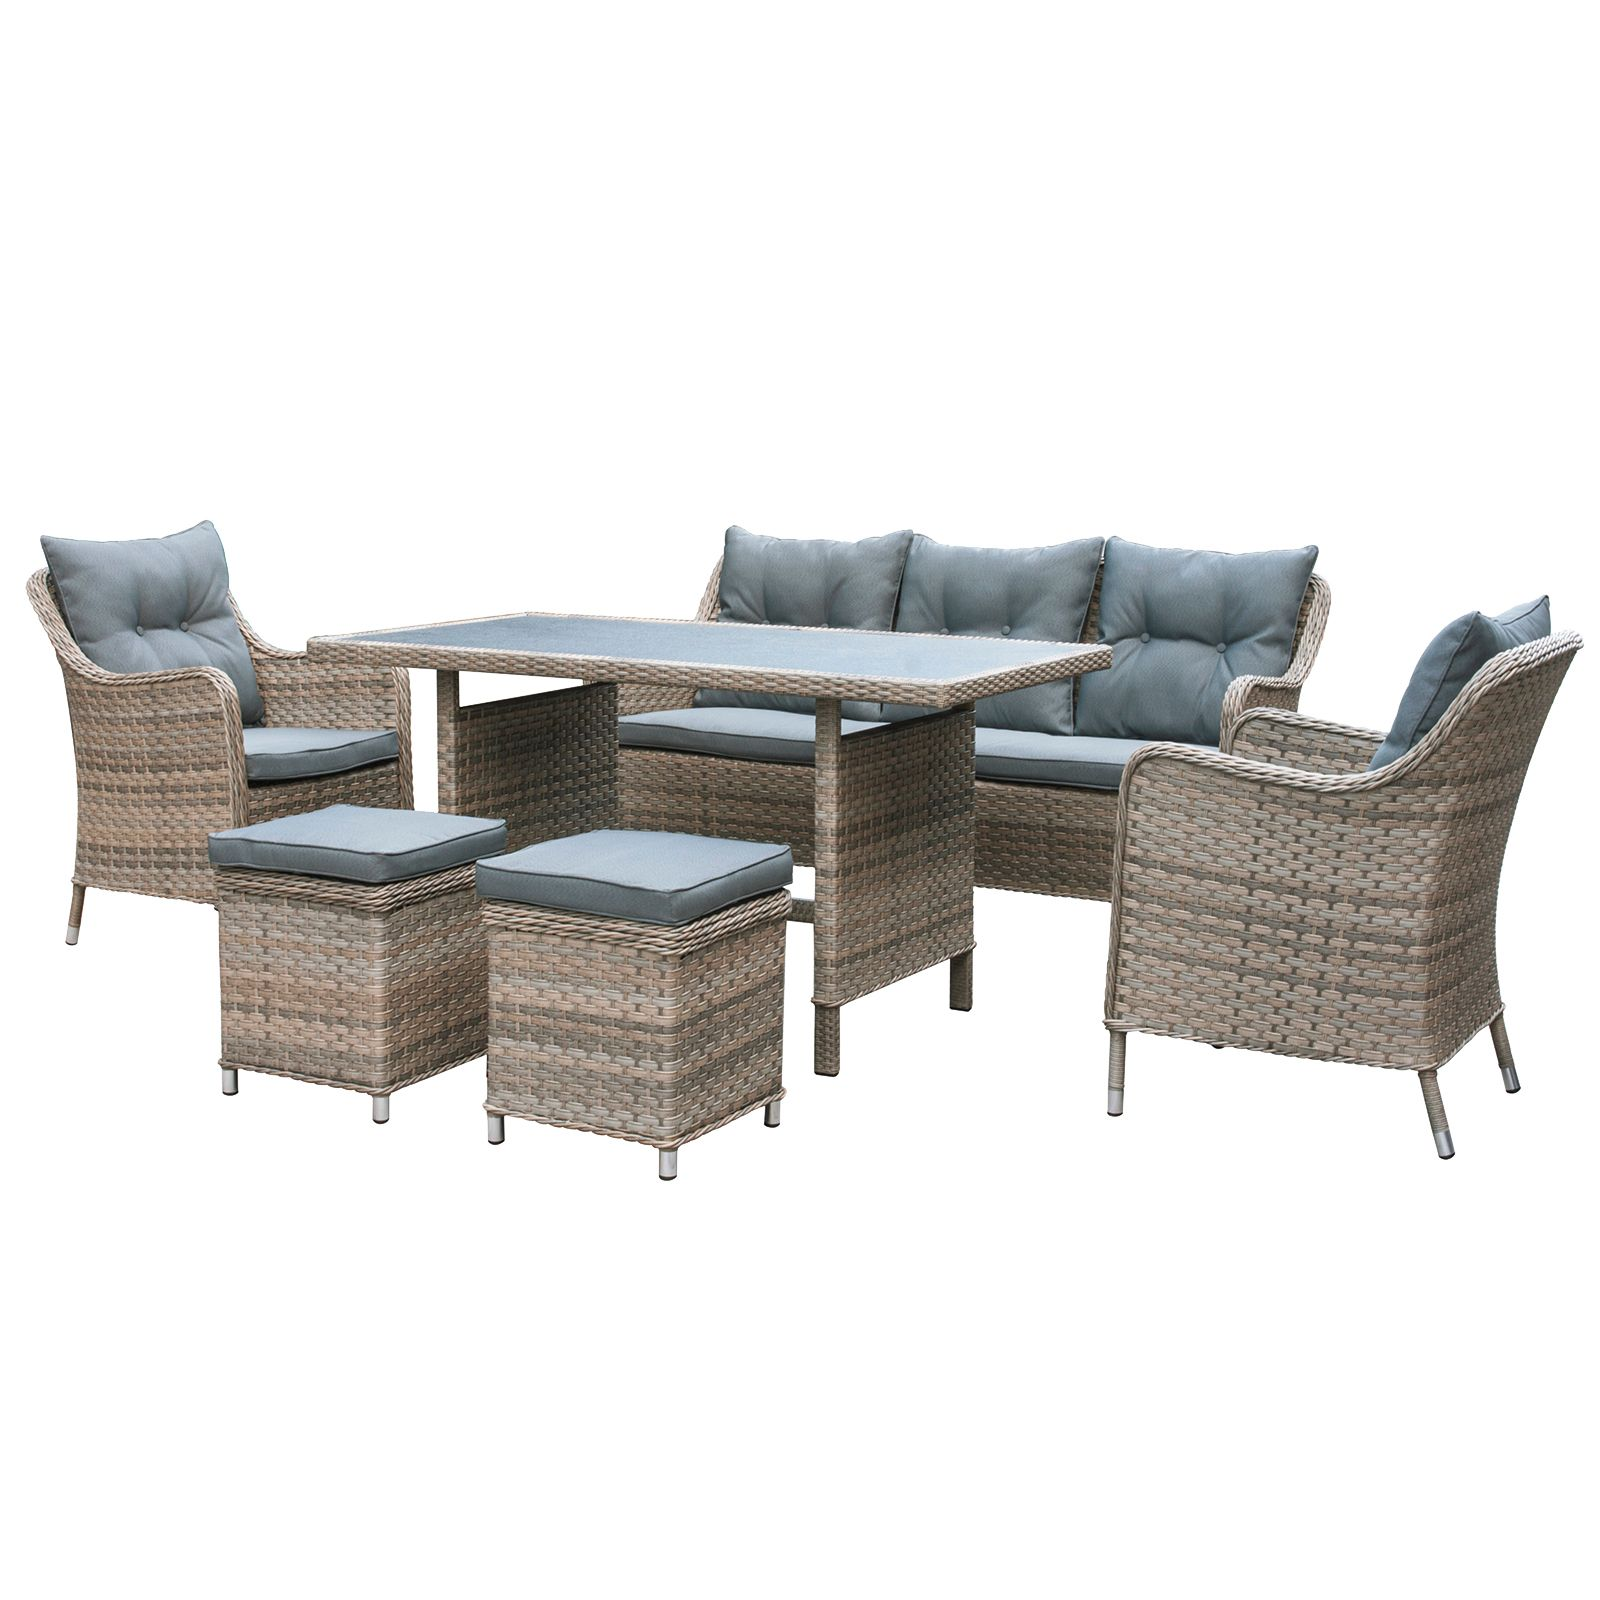 27 off oseasons kensington rattan 7 seater sofa dining for Sofa 7 seater